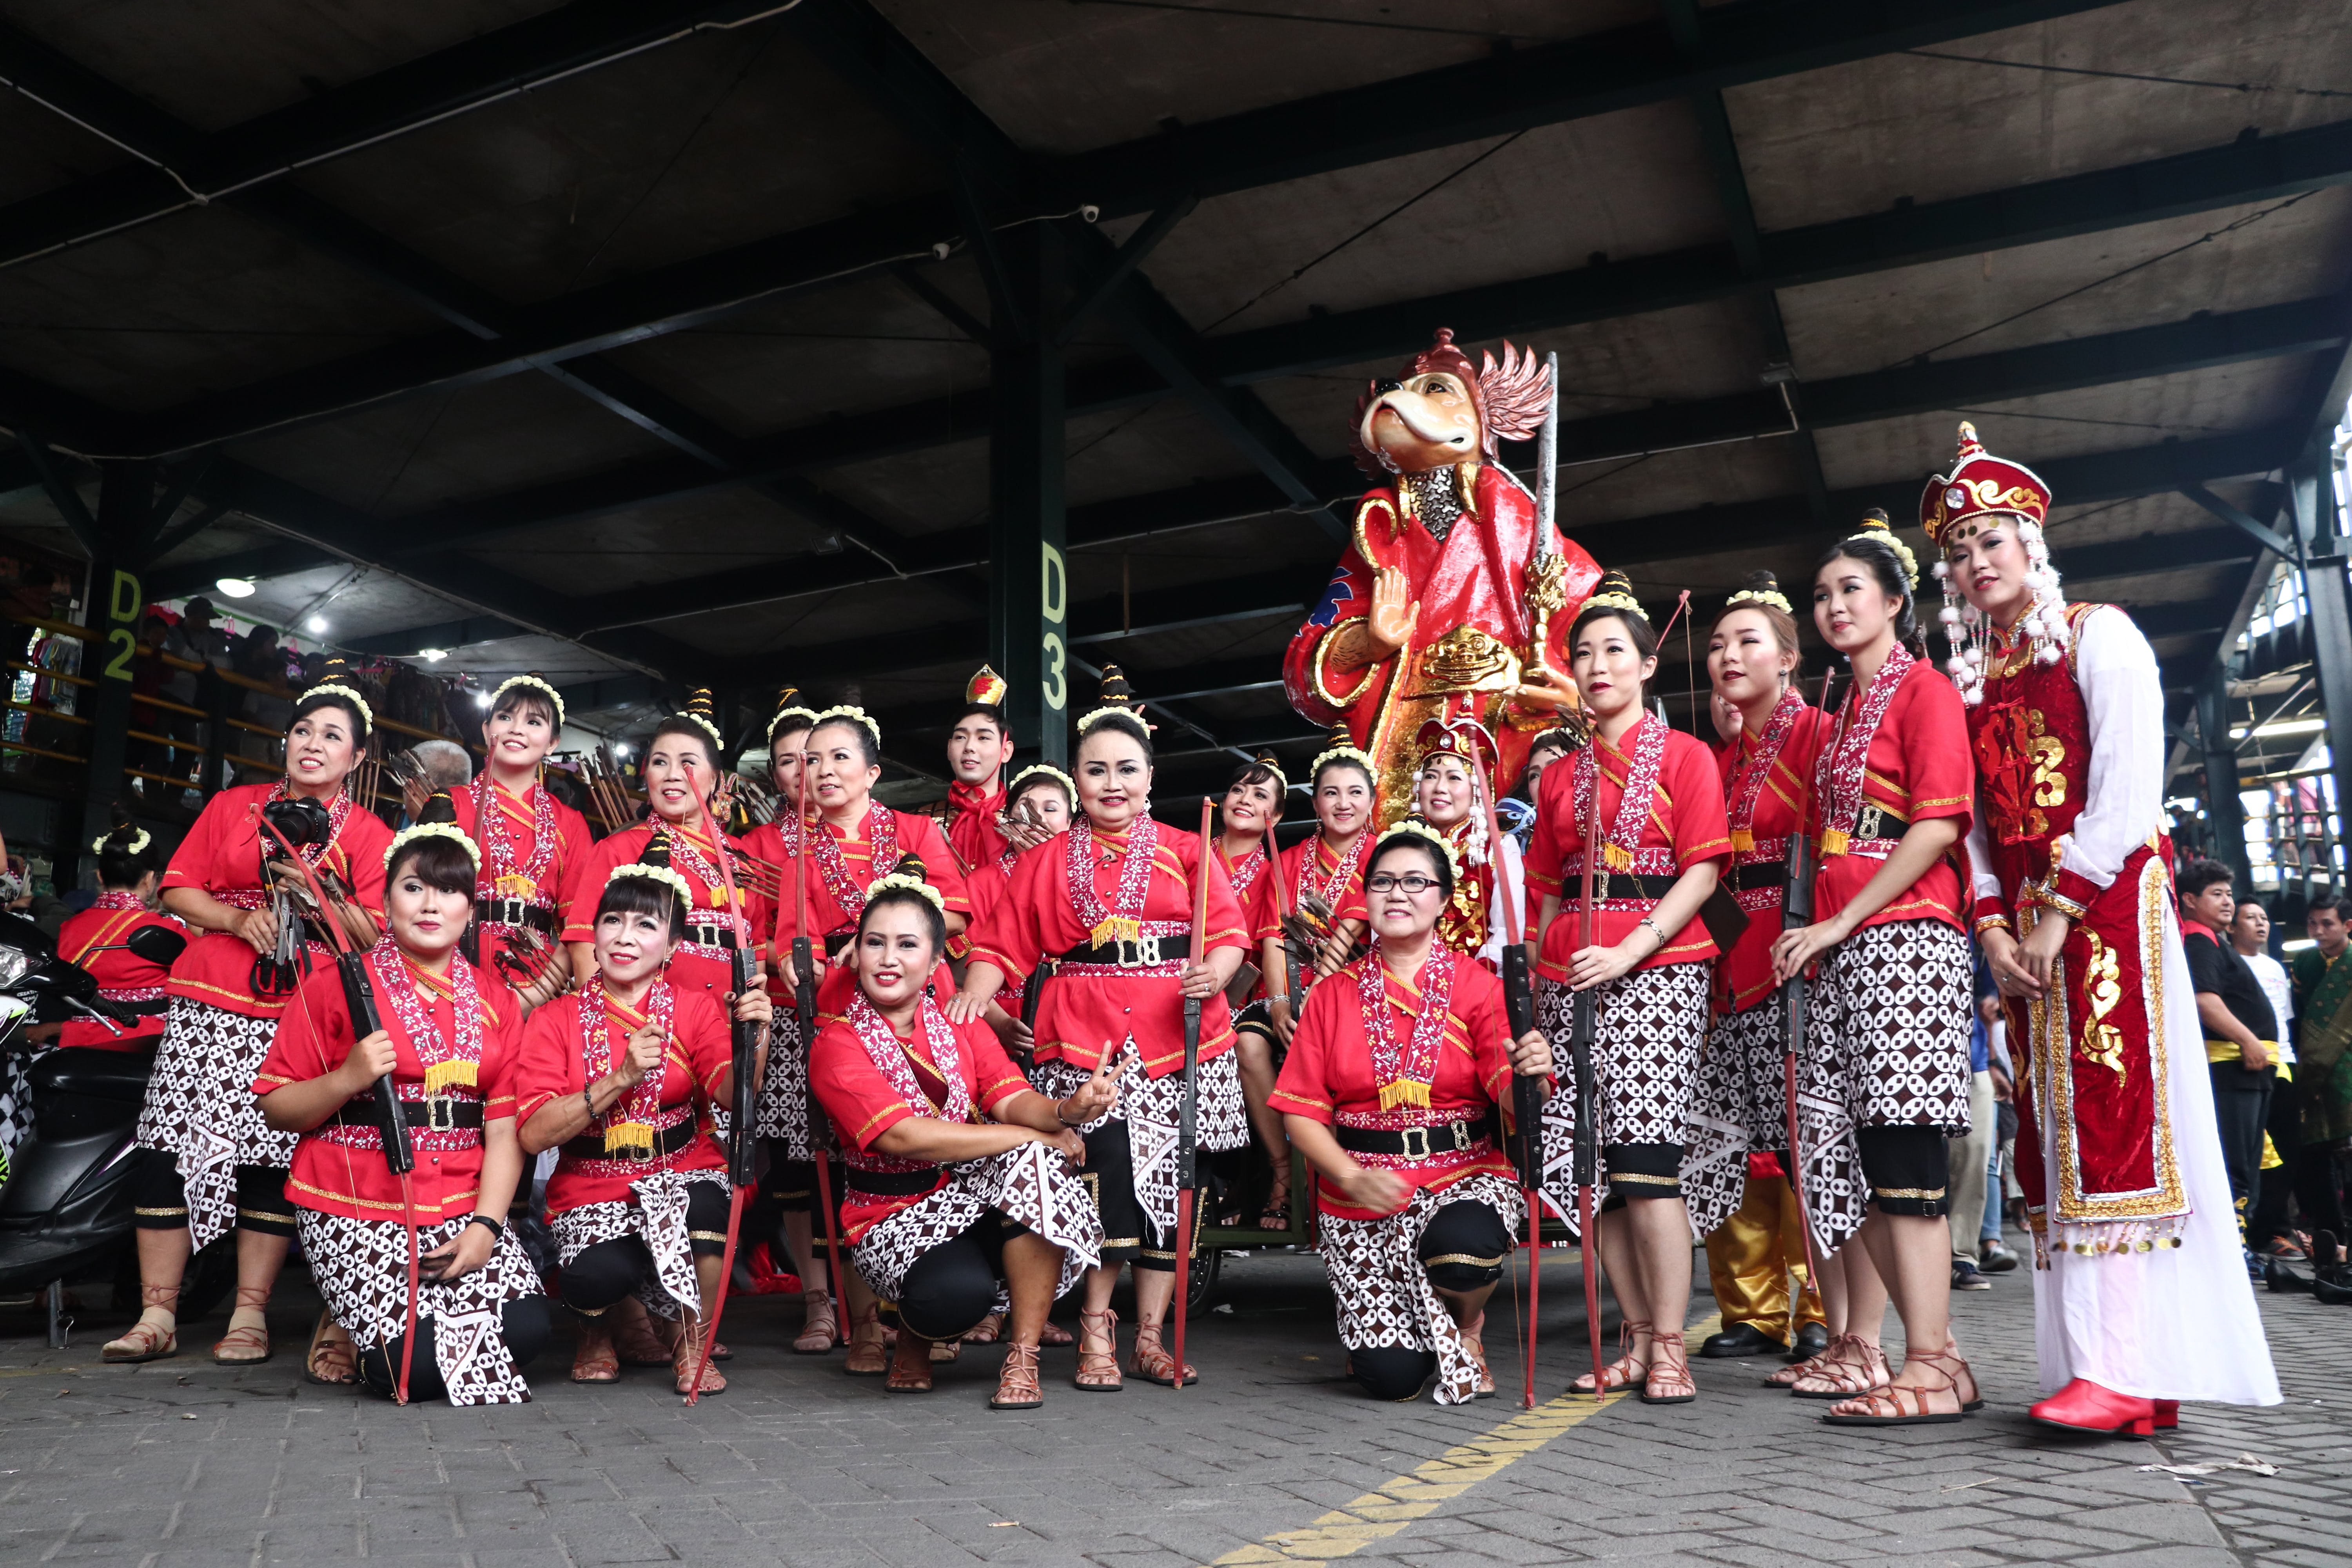 Group of Person Wearing Cultural Dress Taken a Photo